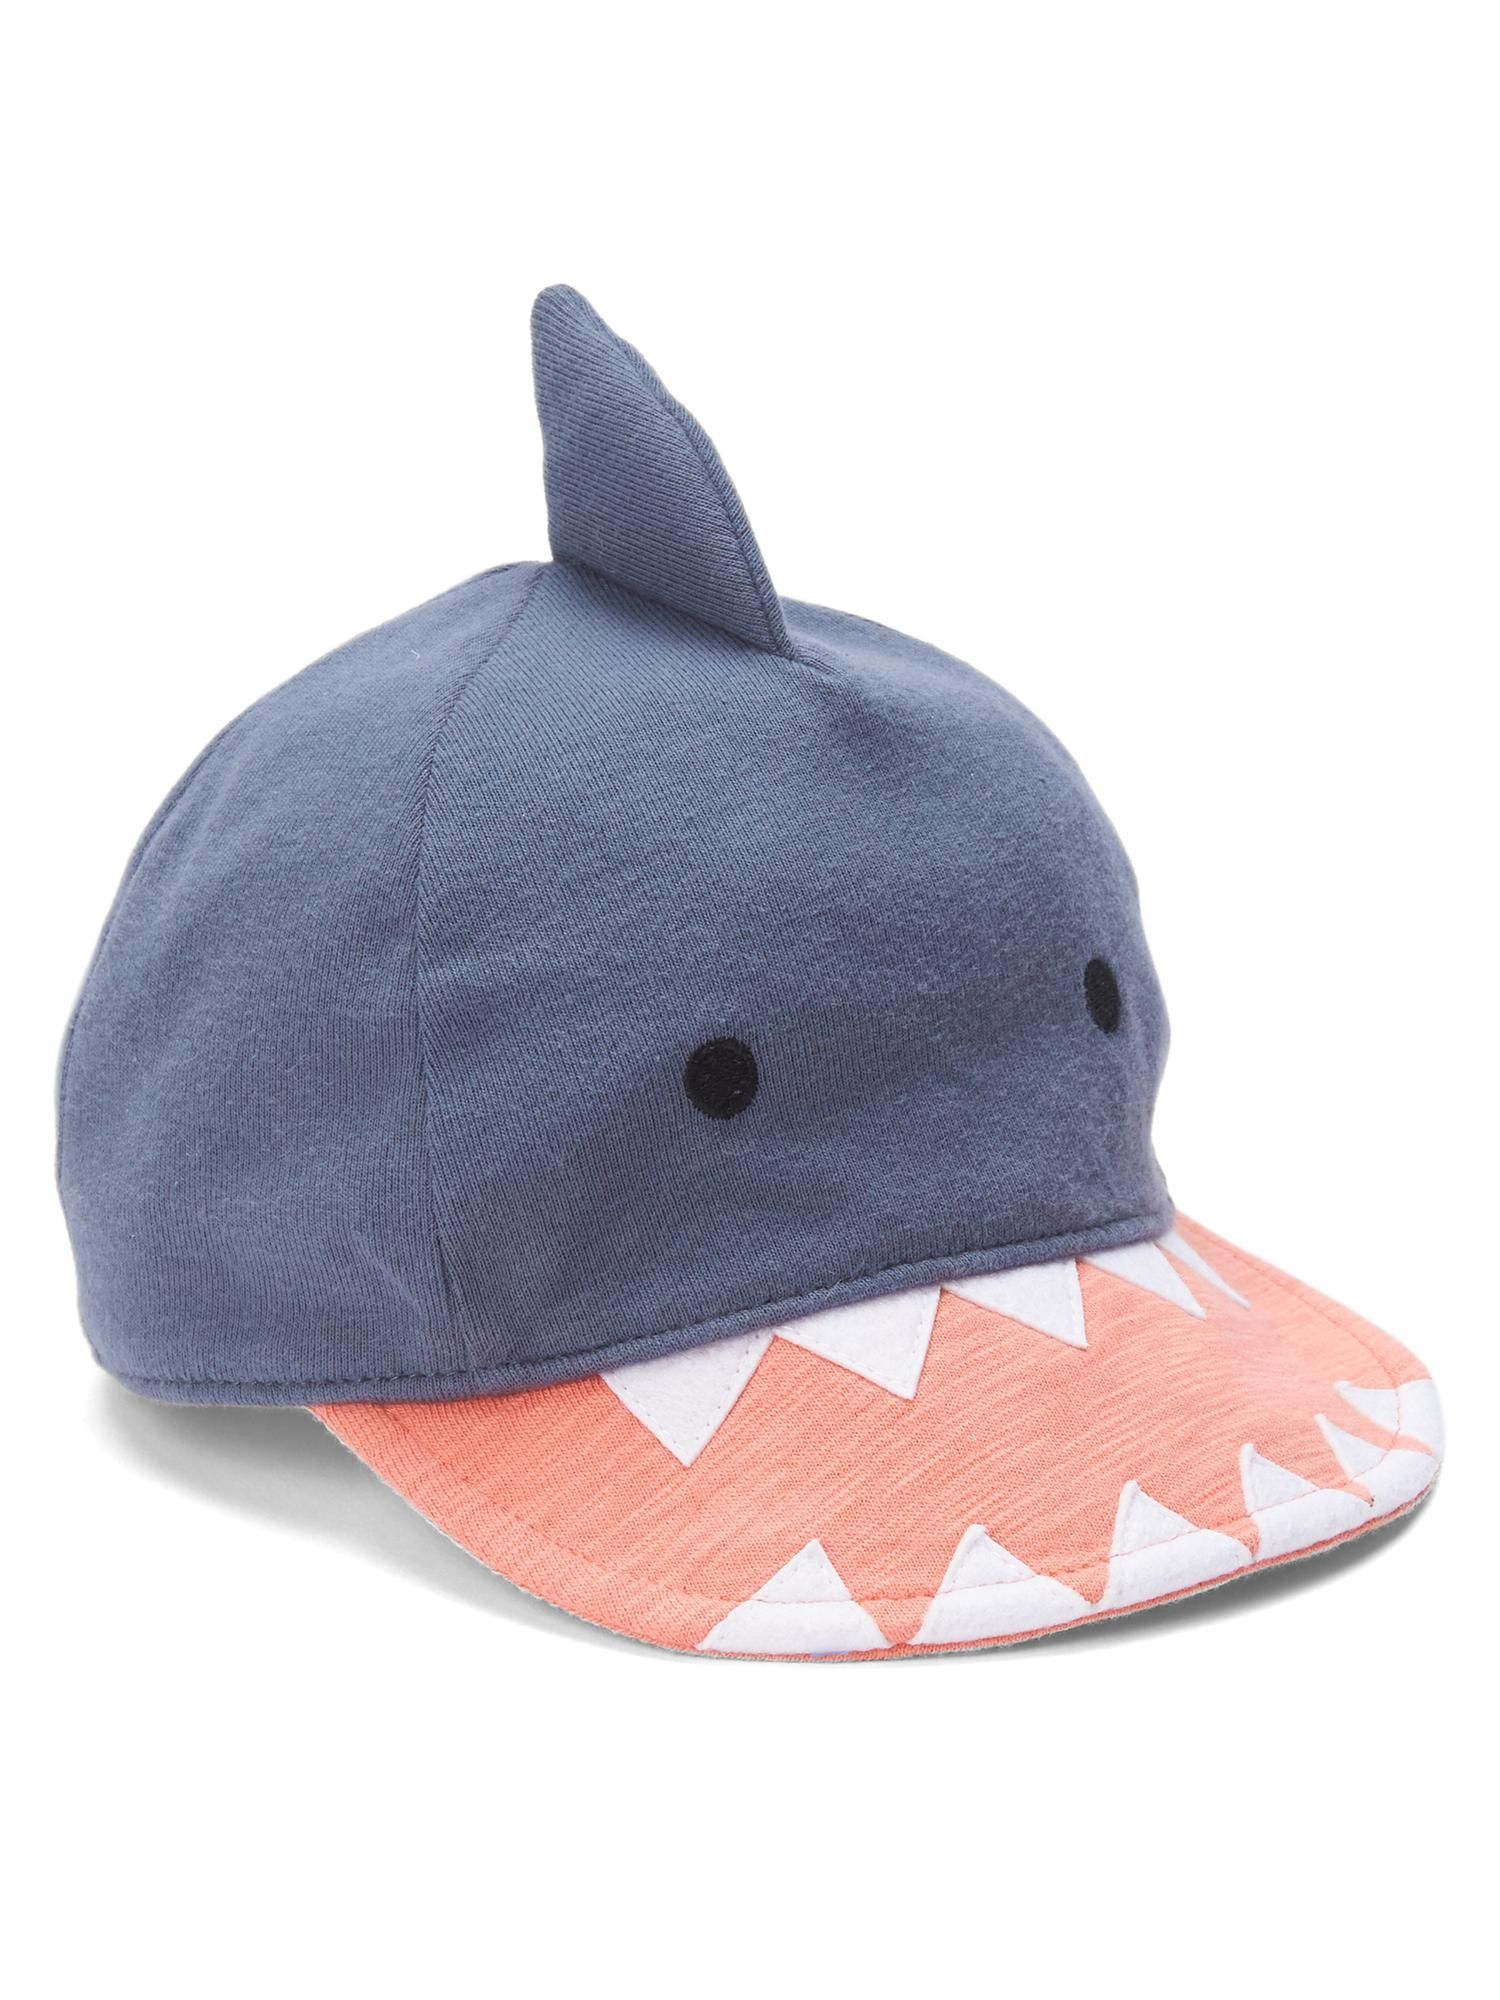 24040a69941 Shark baseball hat